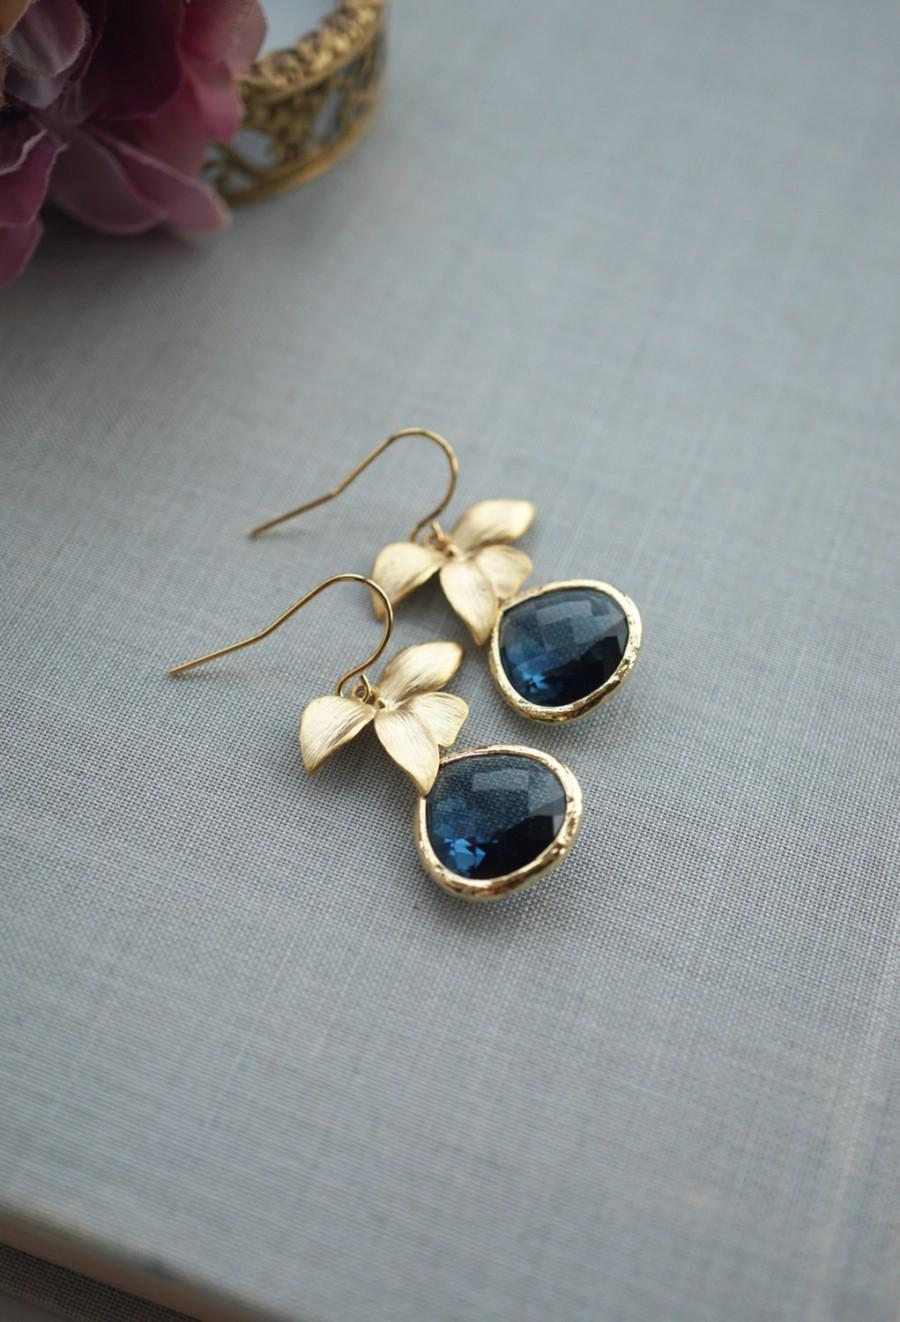 Mariage - Dark Blue, Sapphire Navy Blue Glass Pendants Gold Plated Orchids Drop Dangle Earrings. Bridesmaid Gifts. Blue Gold Wedding, Modern Everyday